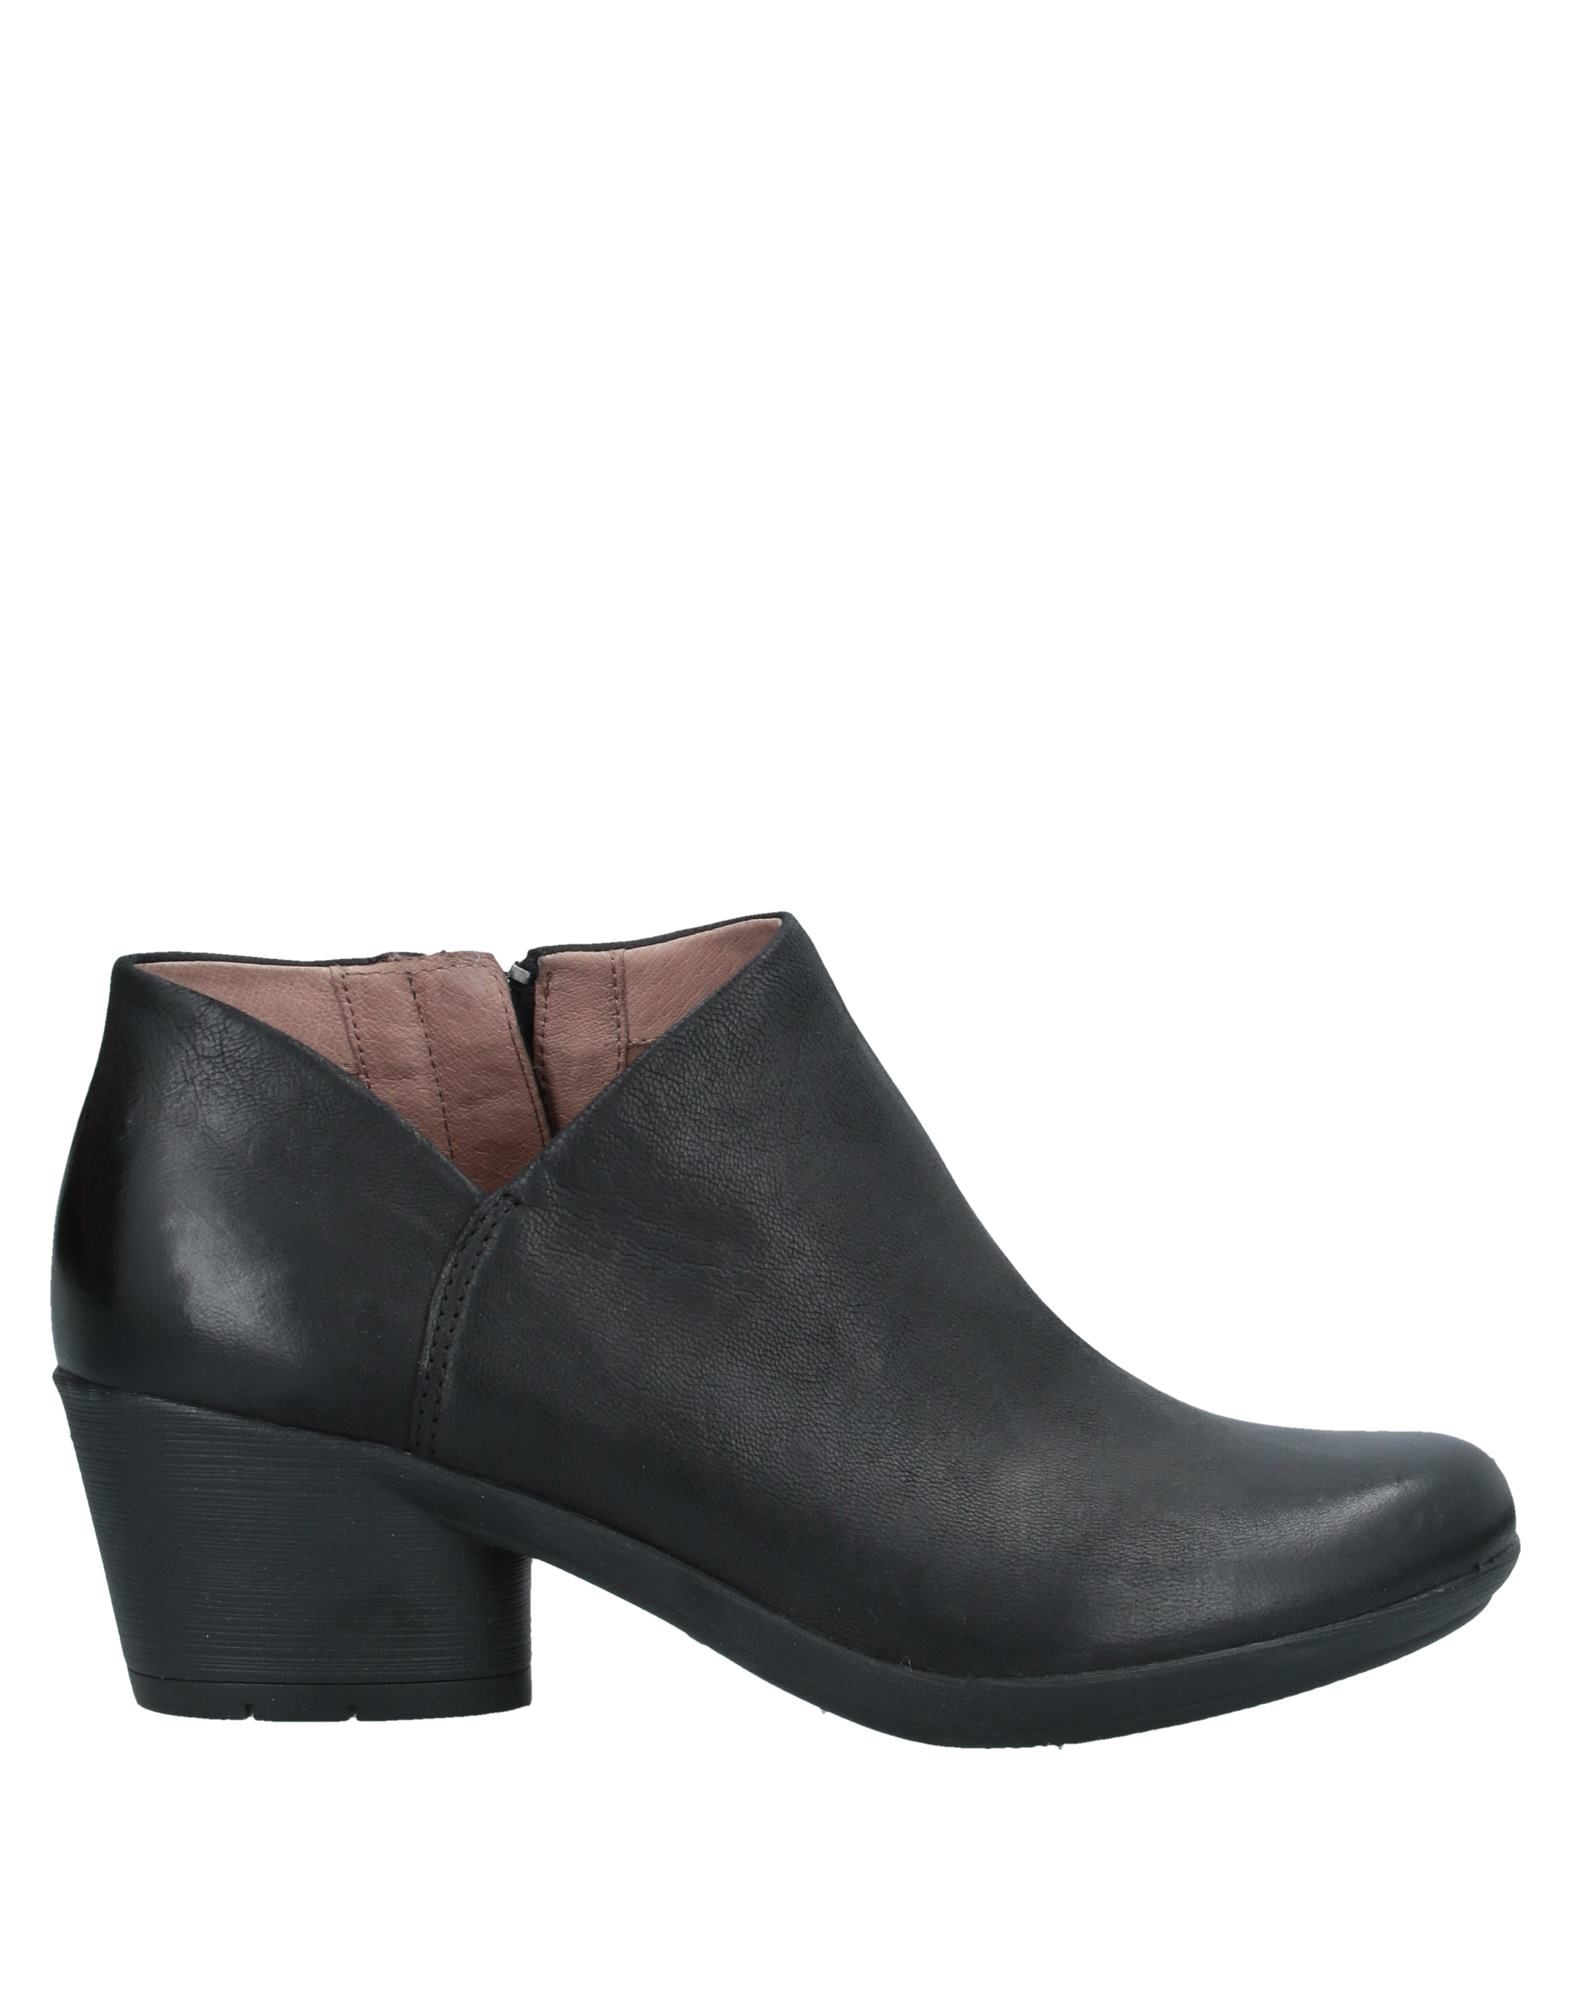 DANSKO Booties. leather, no appliqués, solid color, zipper closure, round toeline, geometric heel, leather lining, rubber sole, contains non-textile parts of animal origin. Soft Leather